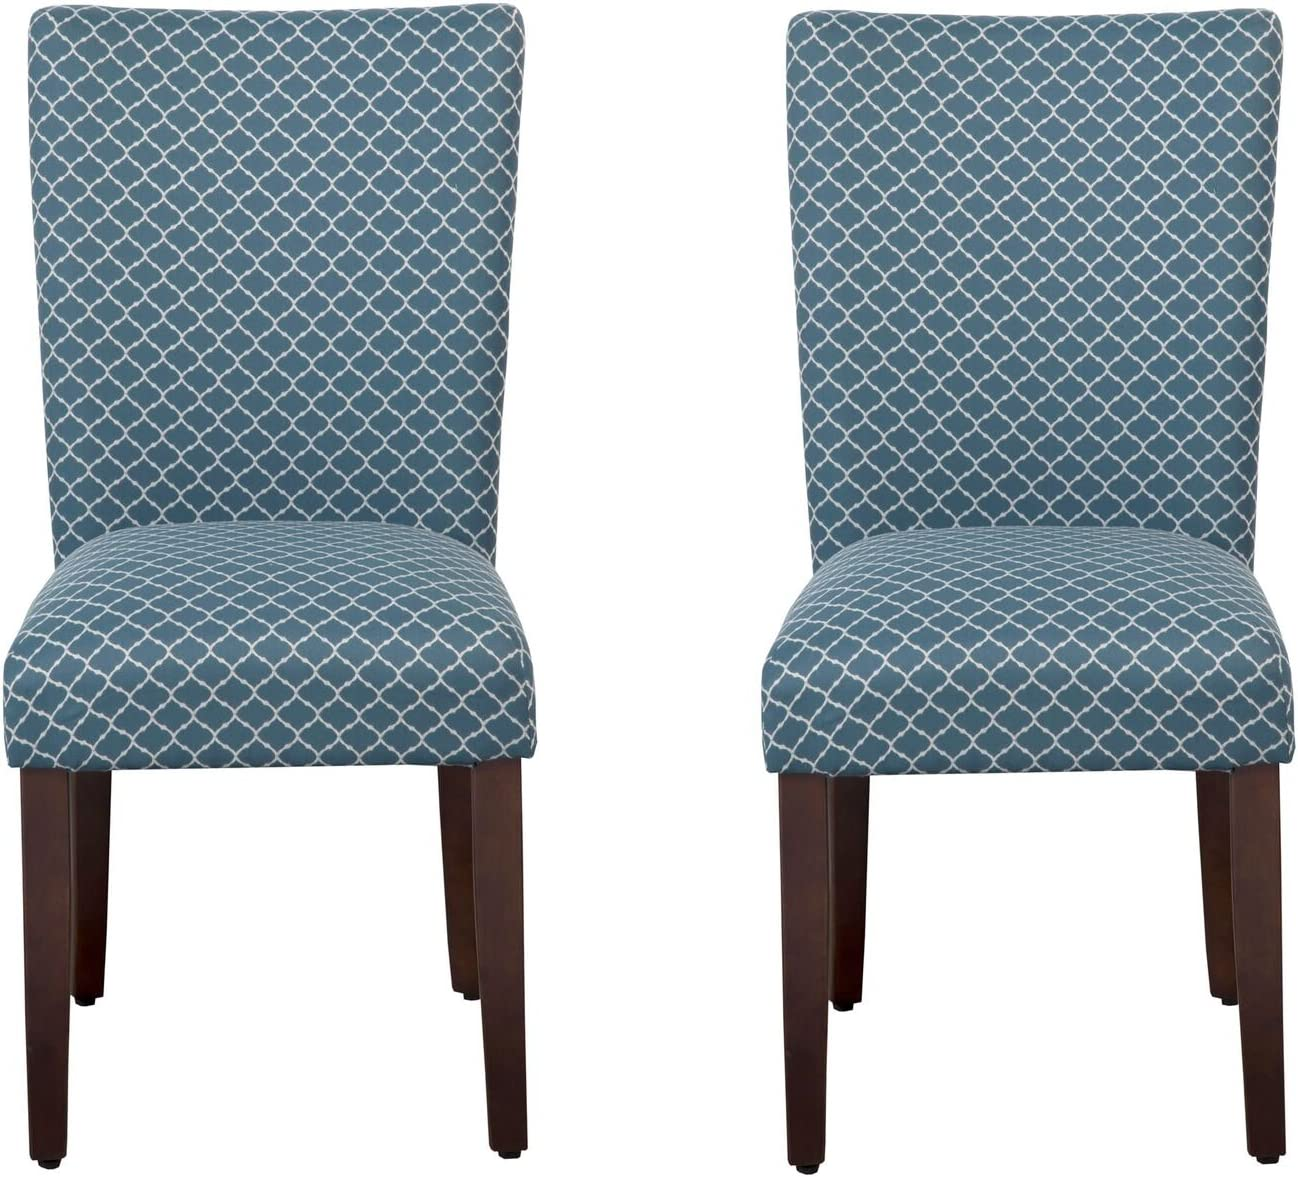 HomePop Parsons Classic Upholstered Accent Dining Chair, Set of 2, Blue and Cream